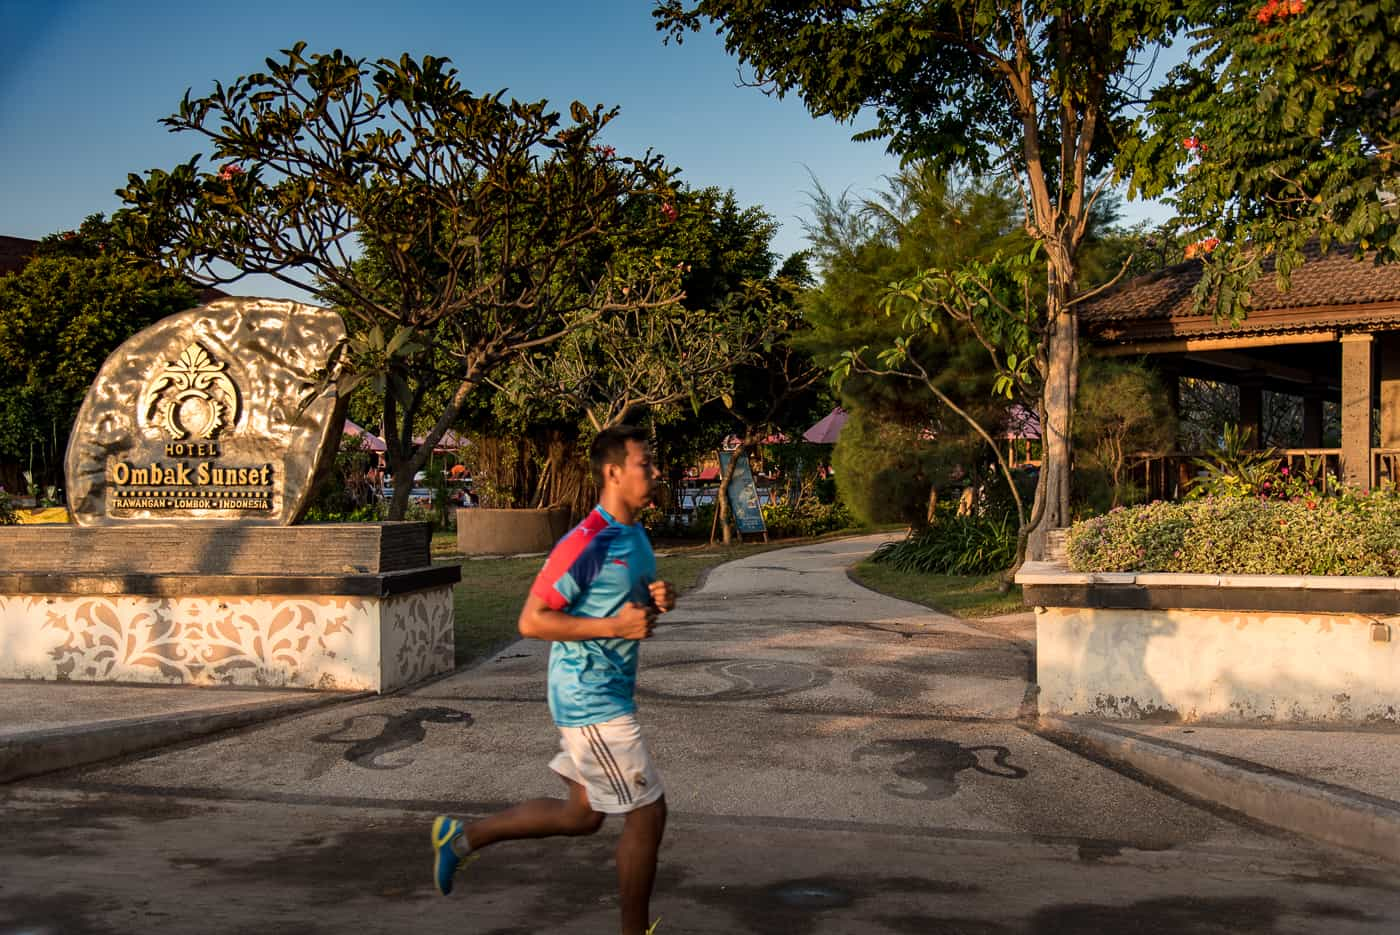 Afternoon run at Hotel Ombak Sunset in Gili Trawangan Island of Lombok Indonesia